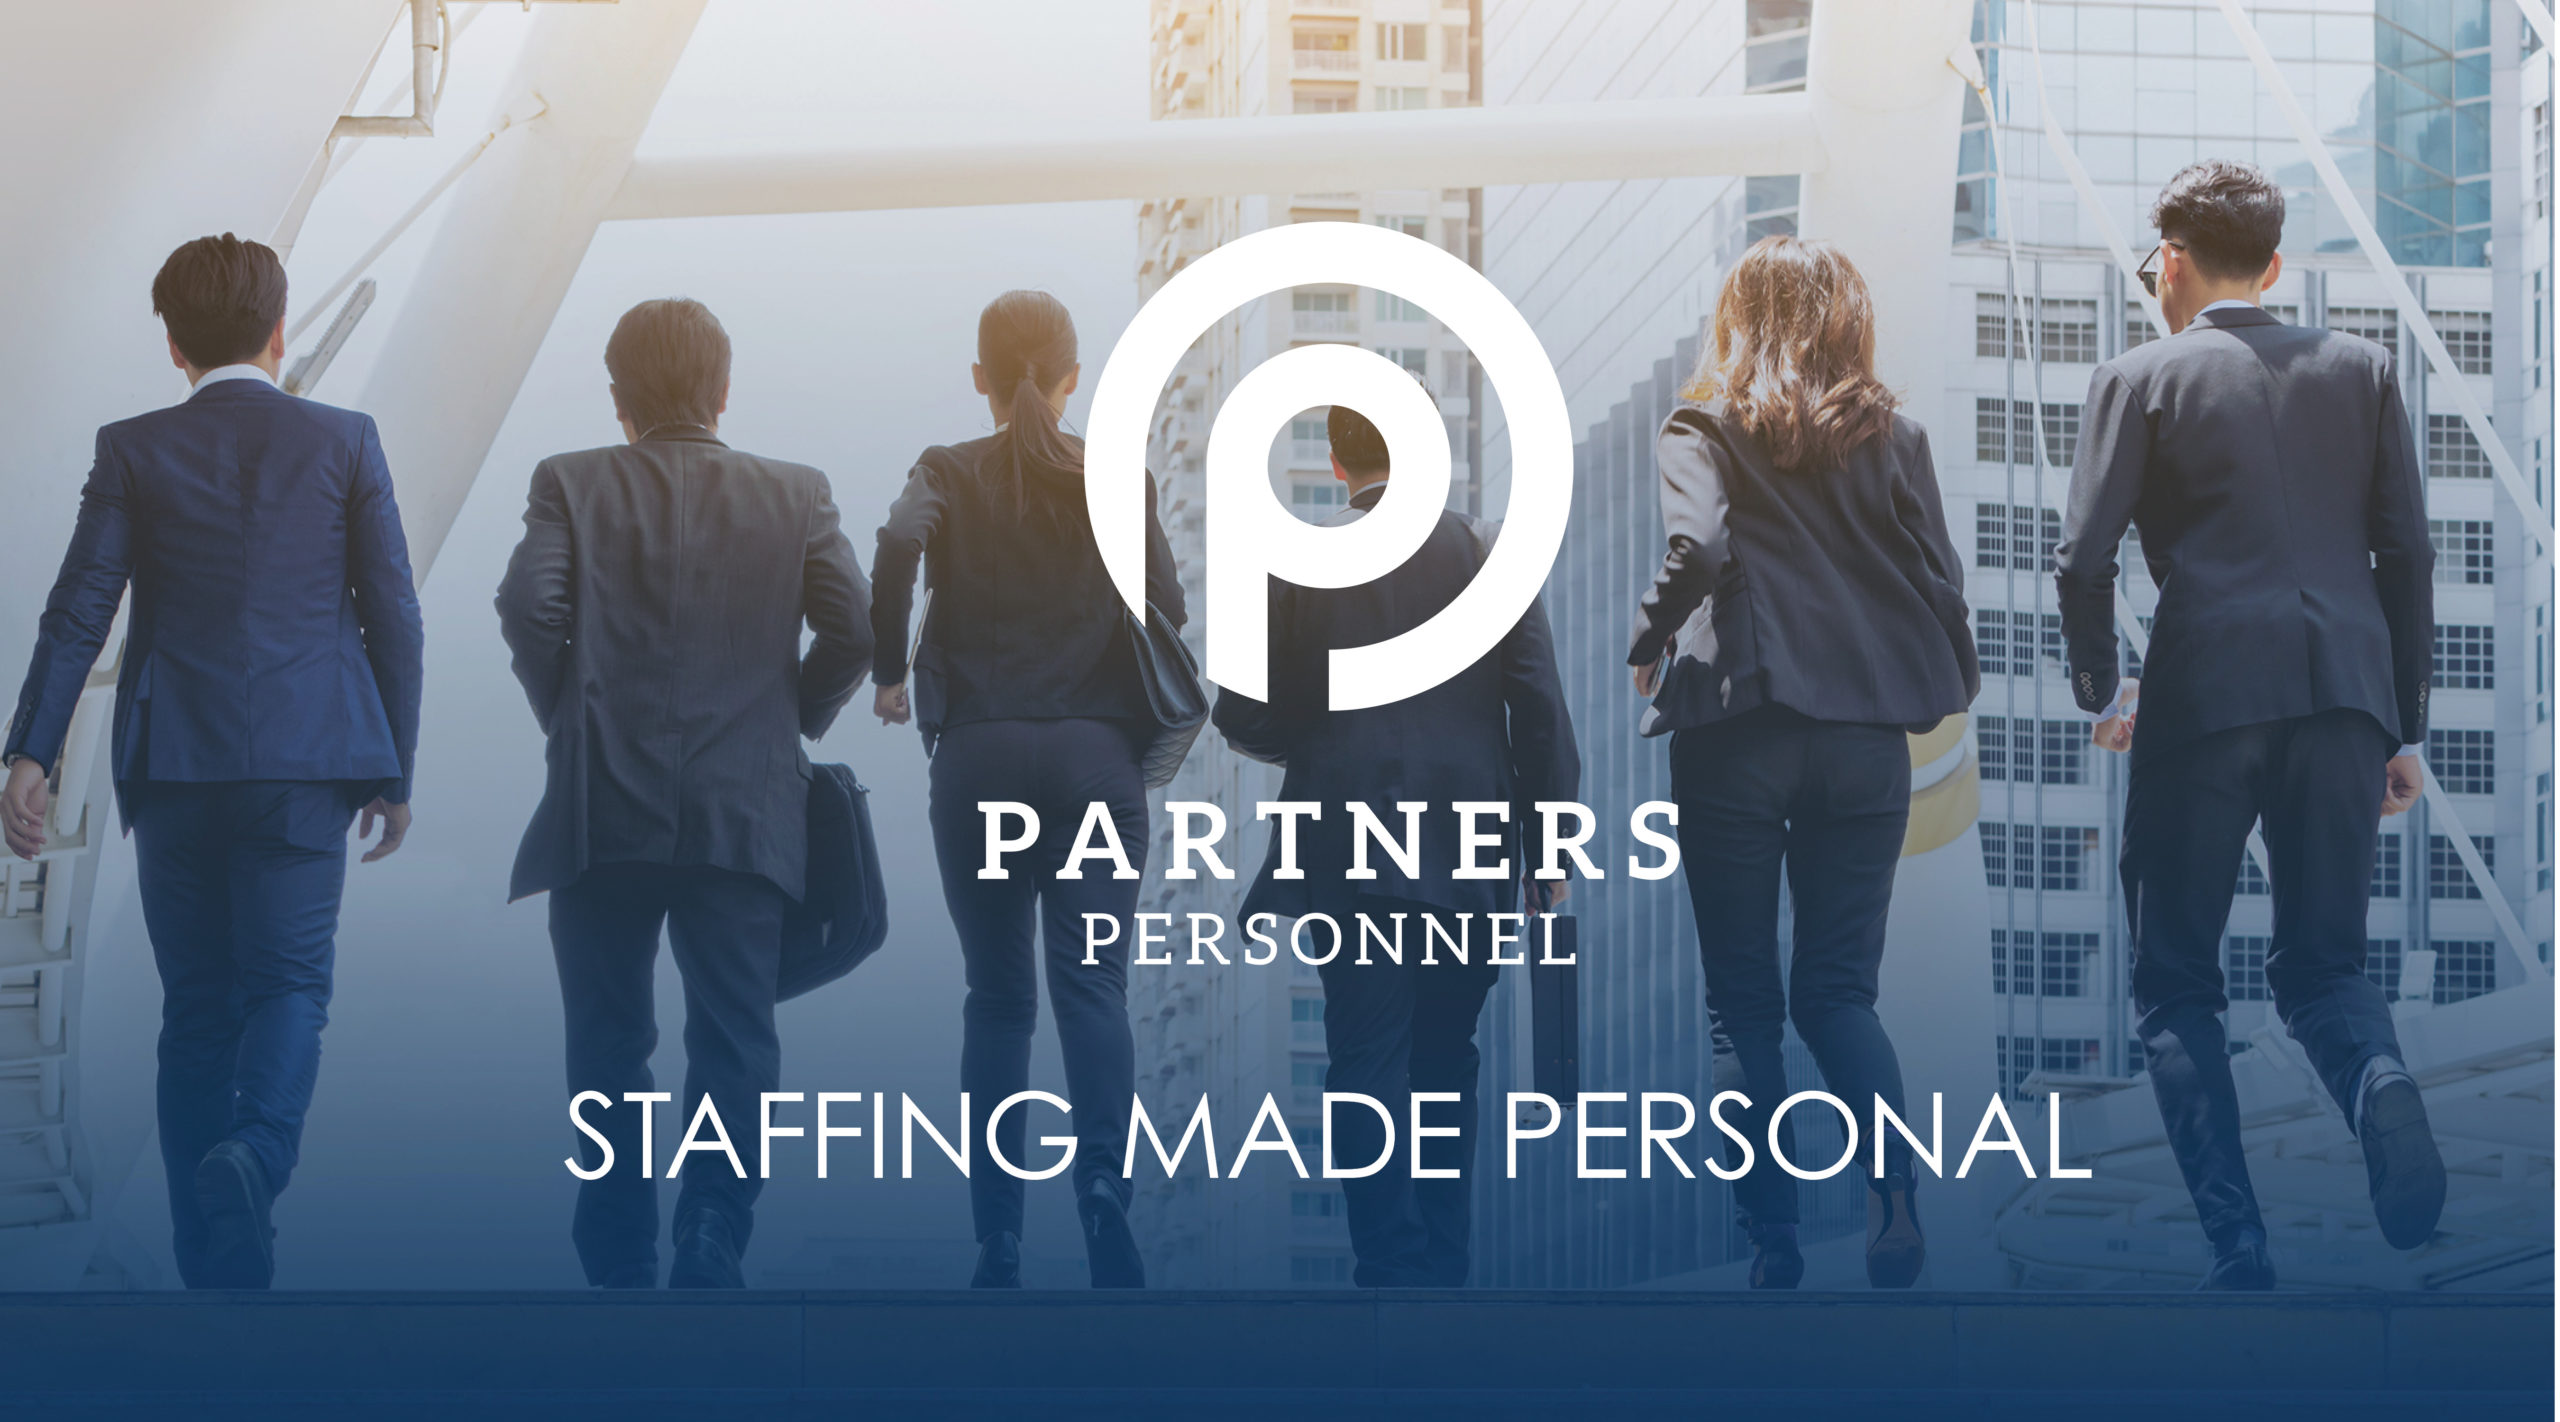 Staffing Made Personal